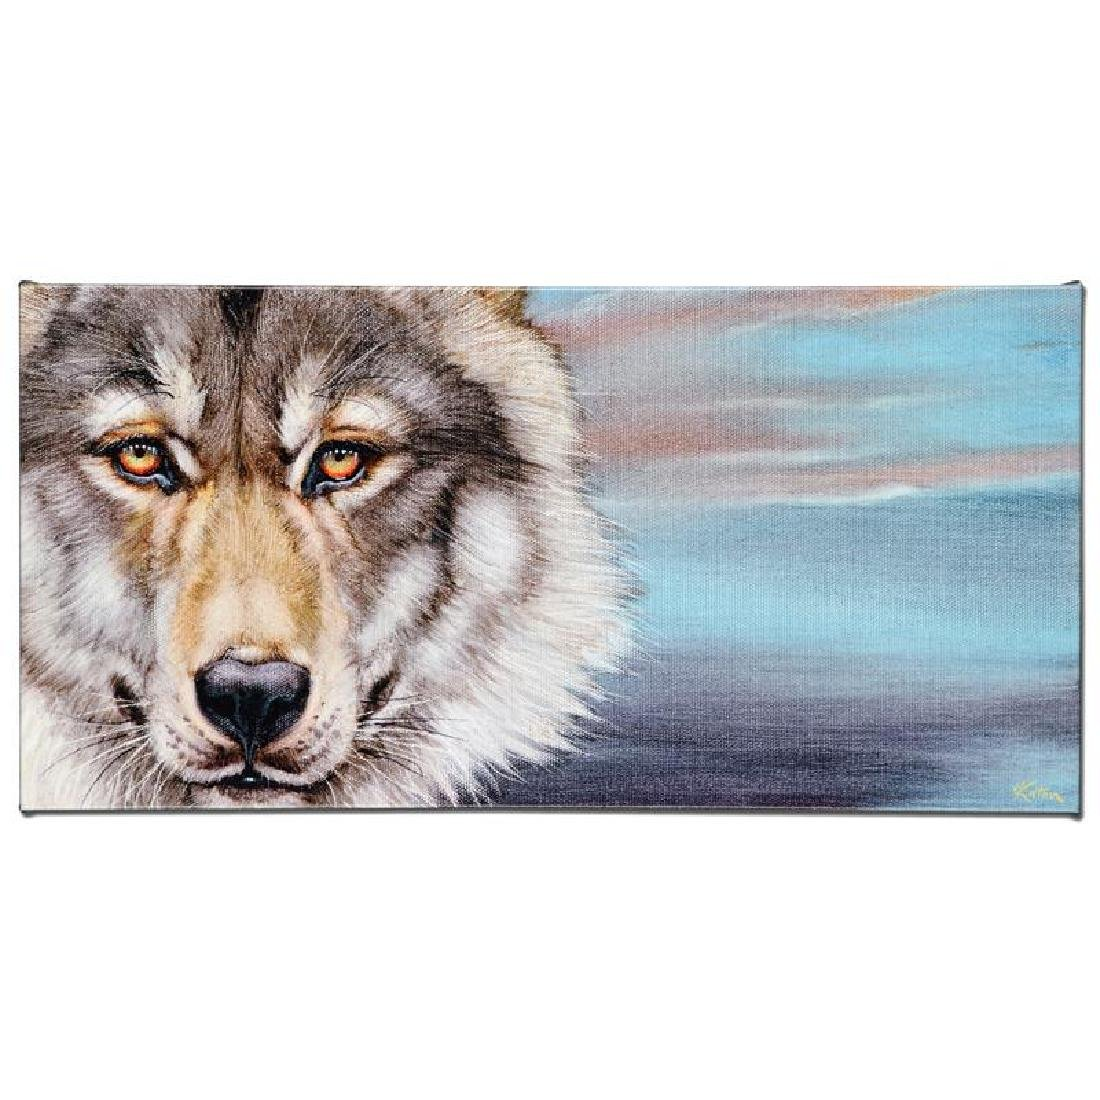 """Wolf"" Limited Edition Giclee on Canvas by Martin Katon - 5"